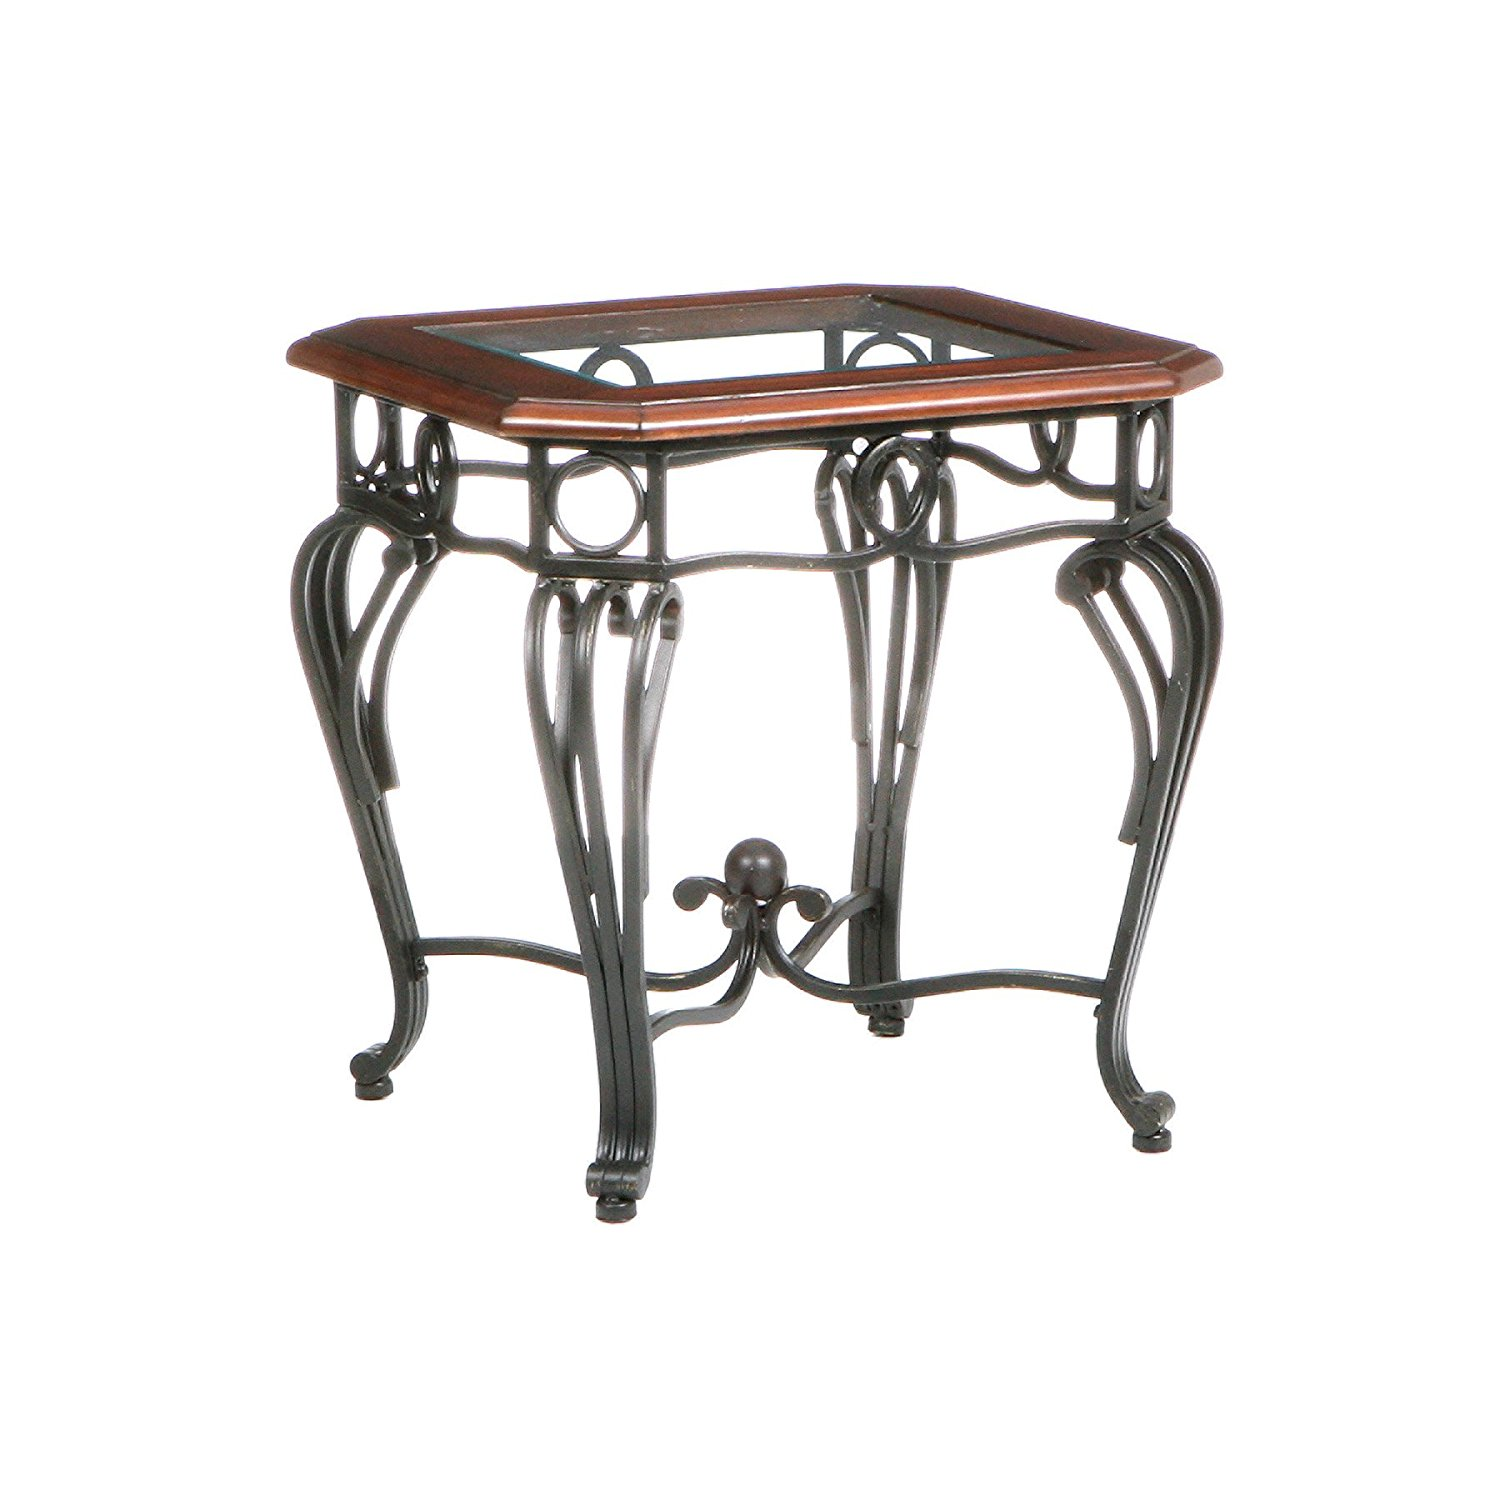 wrought iron end tables with glass tops home furniture modern accent metal table top red wall clock small square white coffee decoration ideas pottery barn leather armchair